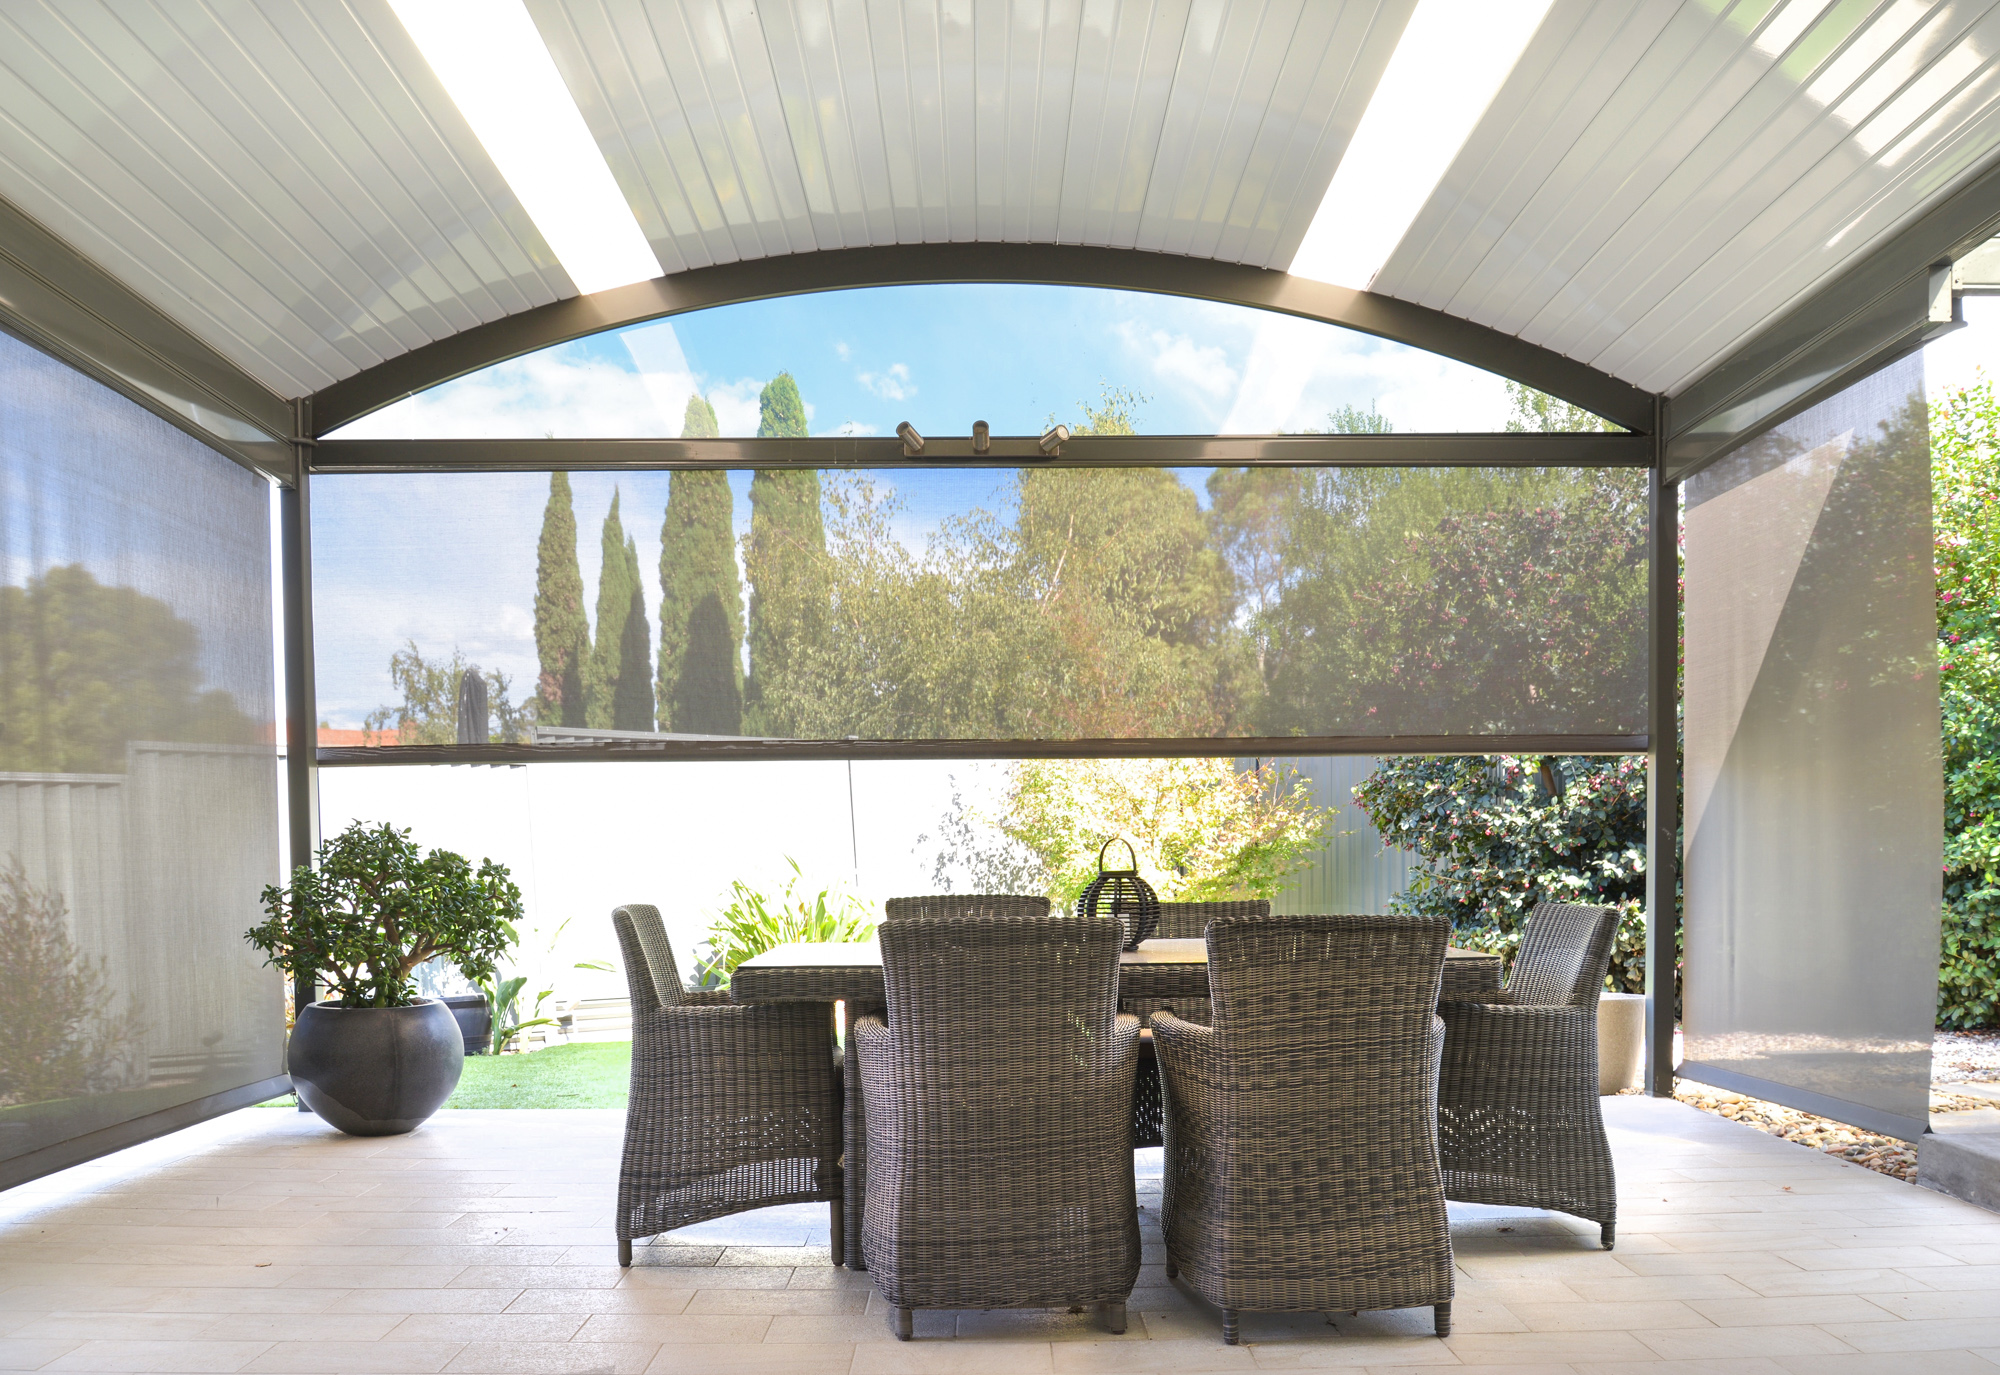 The Fielders Centenary Curved Patio Carport and Verandah range can provide that special touch. & Fielders Centenary Curved Roof - Fielders Centenary